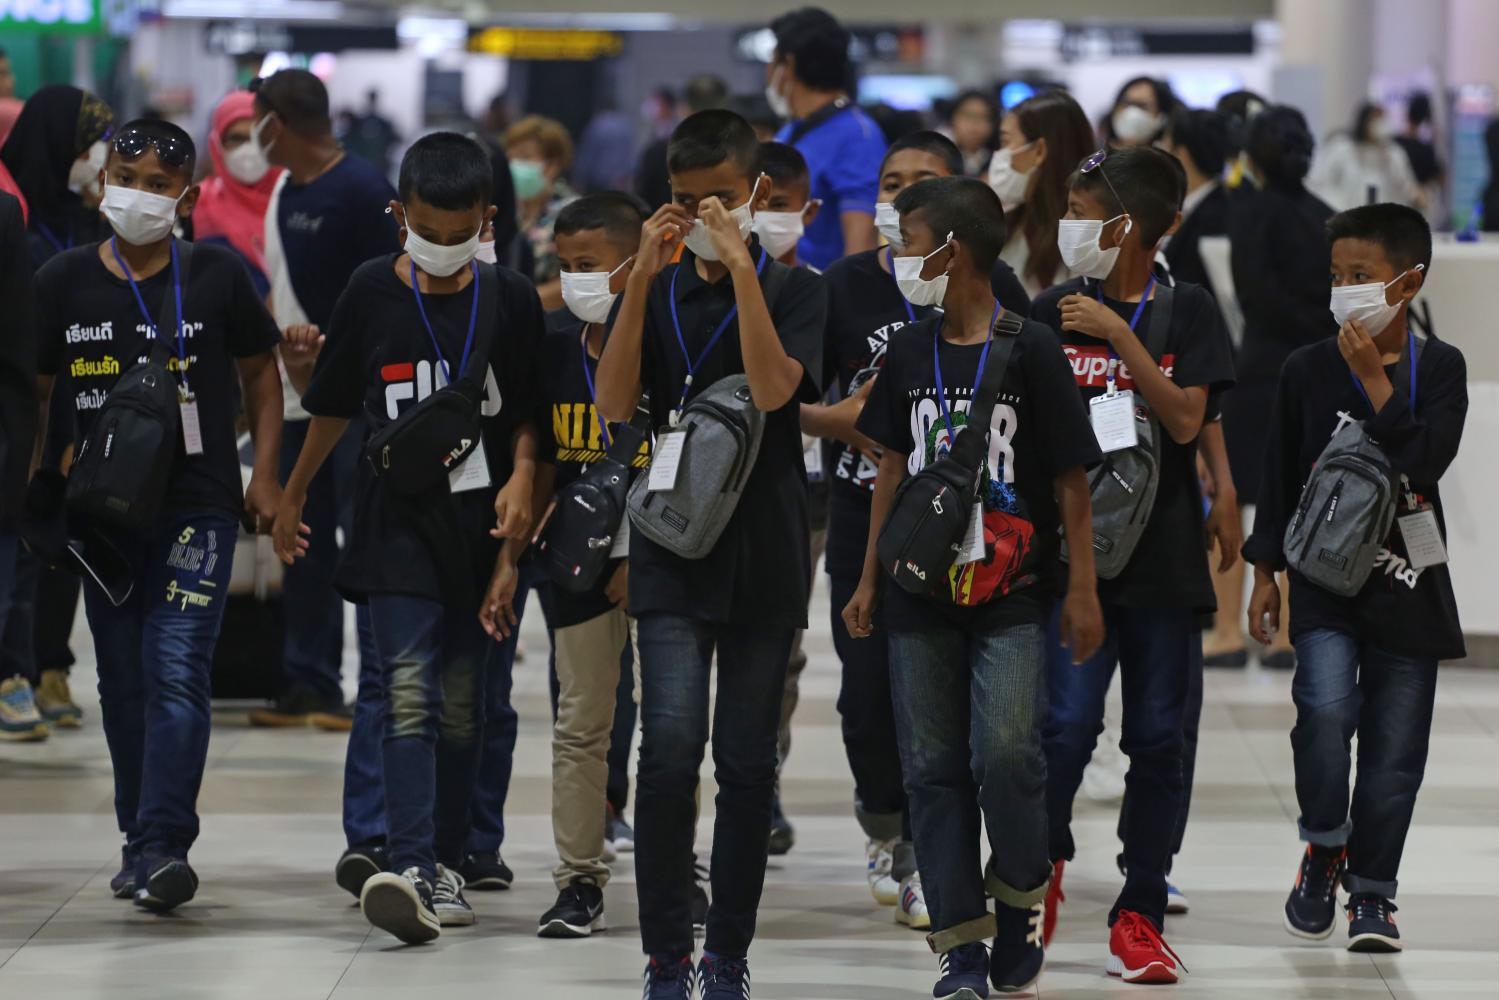 Children wear face masks at Don Mueang airport to protect themselves from the coronavirus outbreak. (Photo by Varuth Hirunyatheb)